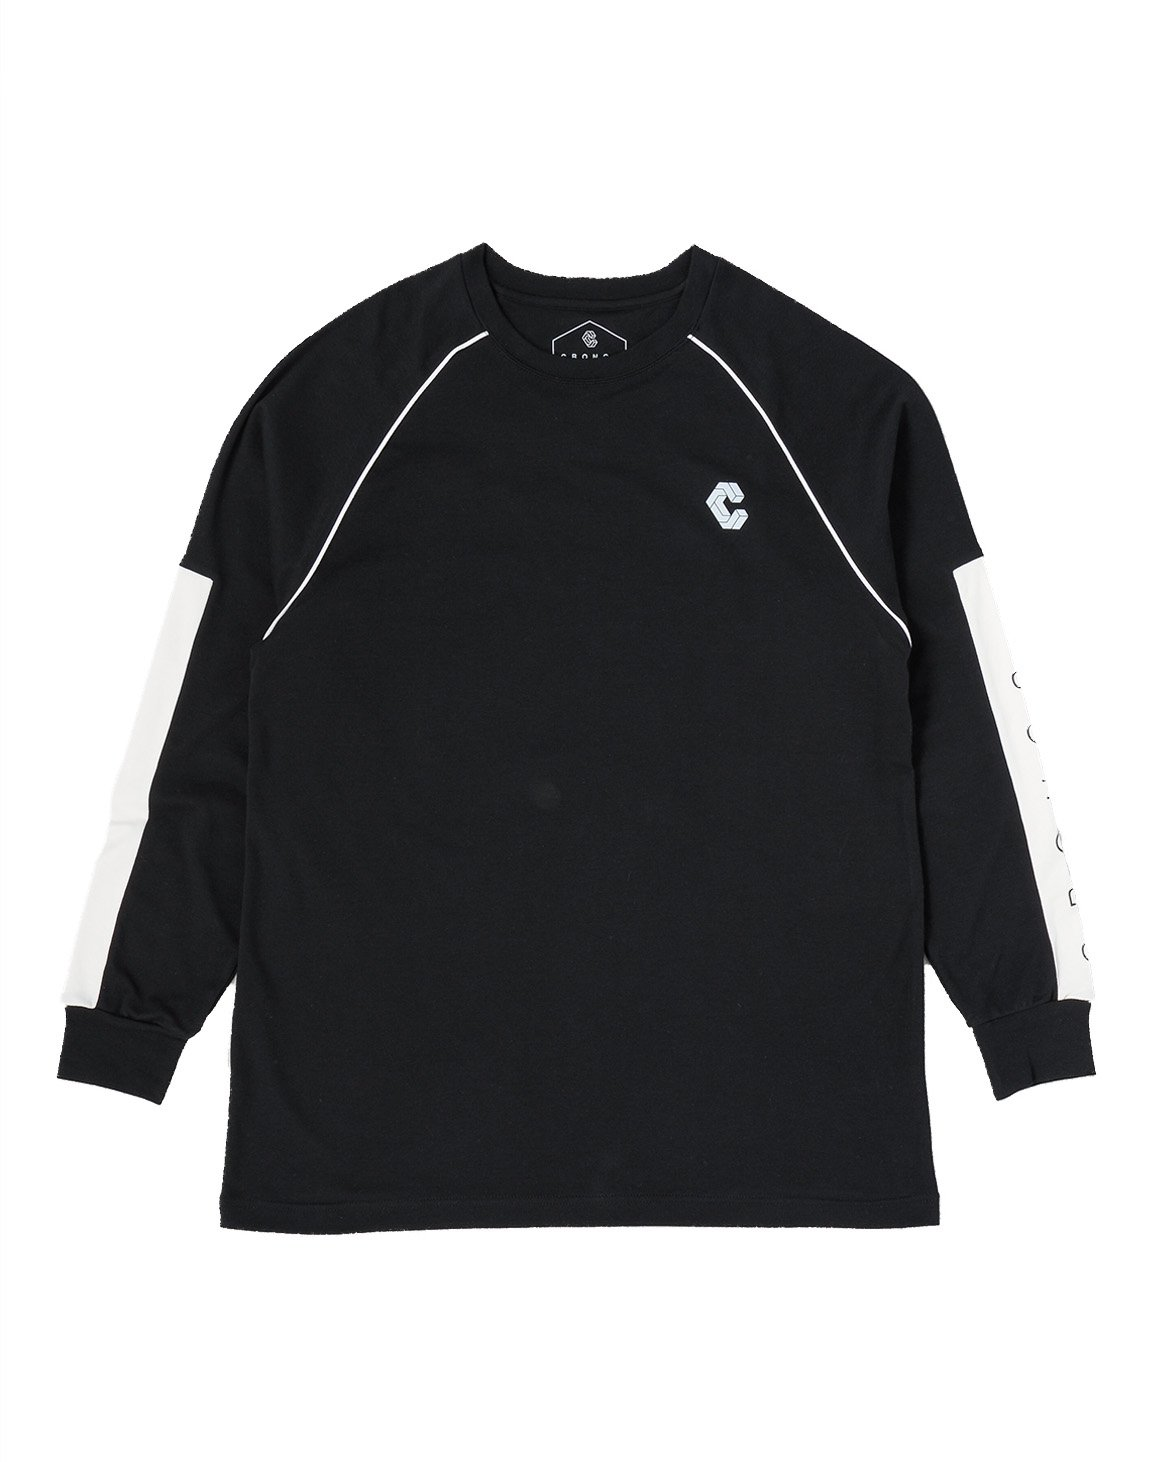 <img class='new_mark_img1' src='https://img.shop-pro.jp/img/new/icons1.gif' style='border:none;display:inline;margin:0px;padding:0px;width:auto;' />CRONOS ARM LOGO LONG SLEEVE【BLACK】